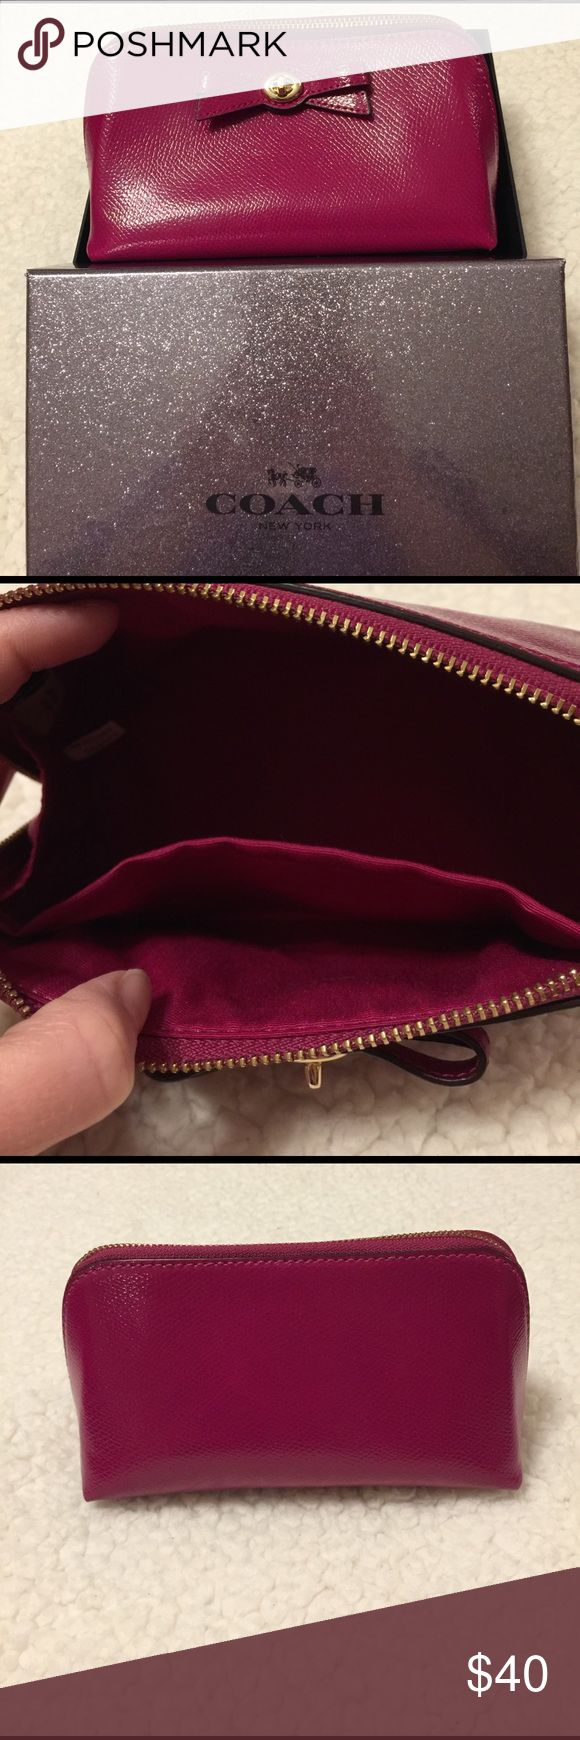 🎉 FREE SHIPPING (Offer $7 less) 🎉Coach bag NWT Coach glossy cranberry zip up bag, box included. For corralling make up or to hold all those things that fall to the bottom of your purse - lipstick, bobby pins, etc! Has 3 tiny white dots on it - so small I can't get them to show up in a pic. Smoke & pet free home, I almost always ship same or next day. Coach Bags Cosmetic Bags & Cases